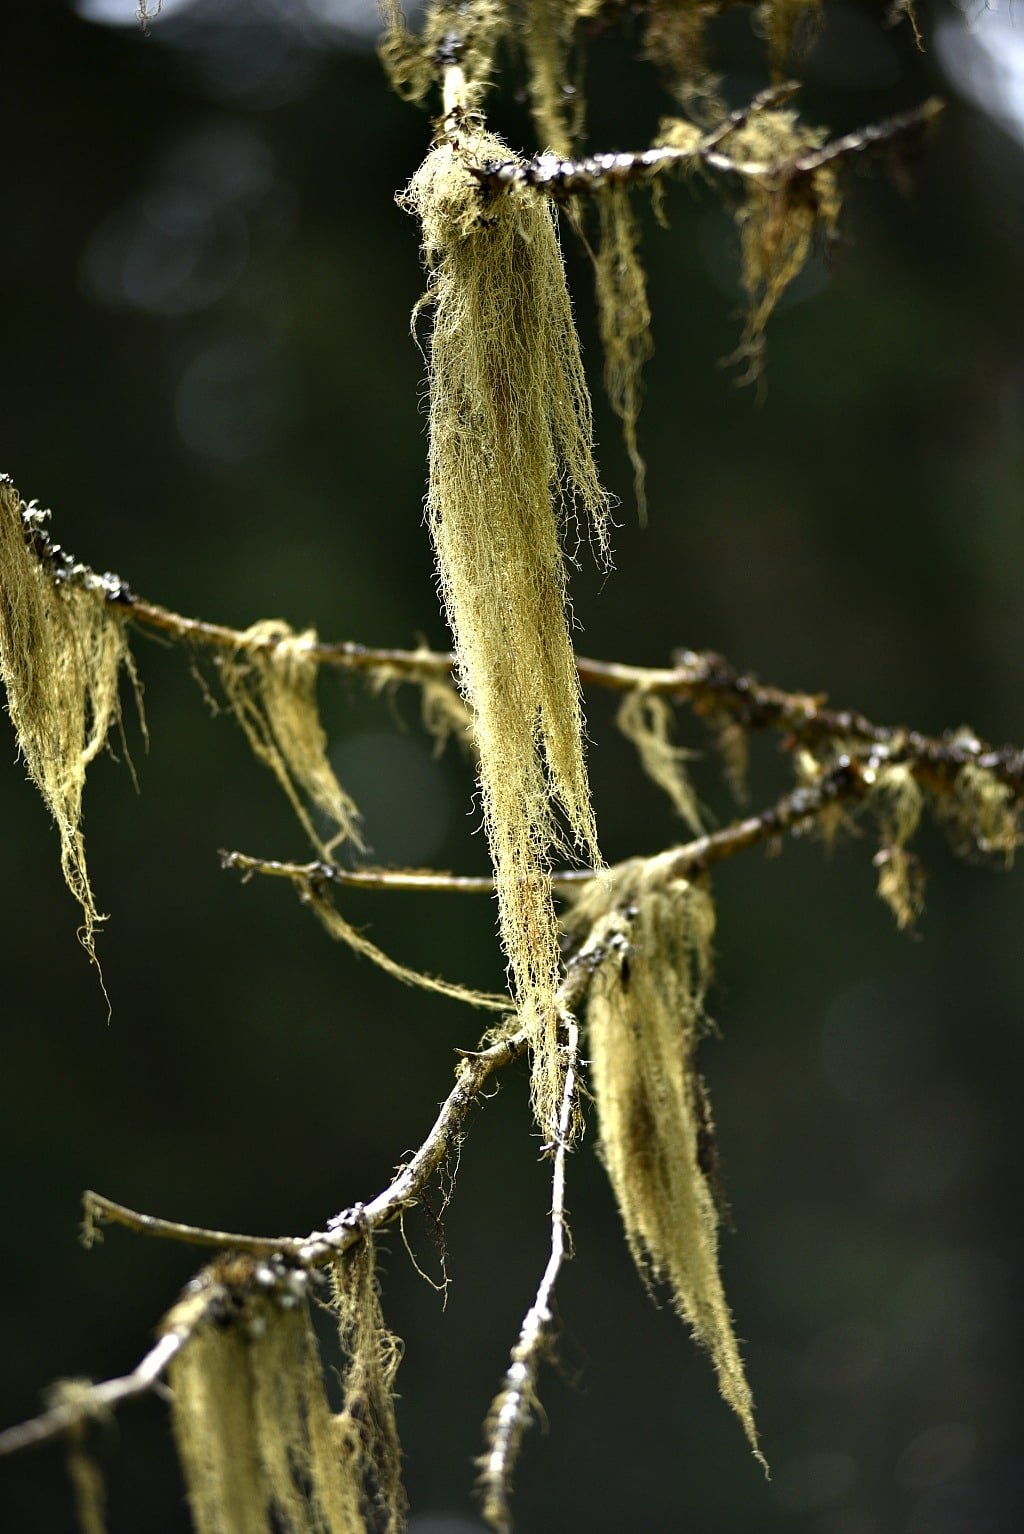 long strands of usnea lichen hanging from a branch